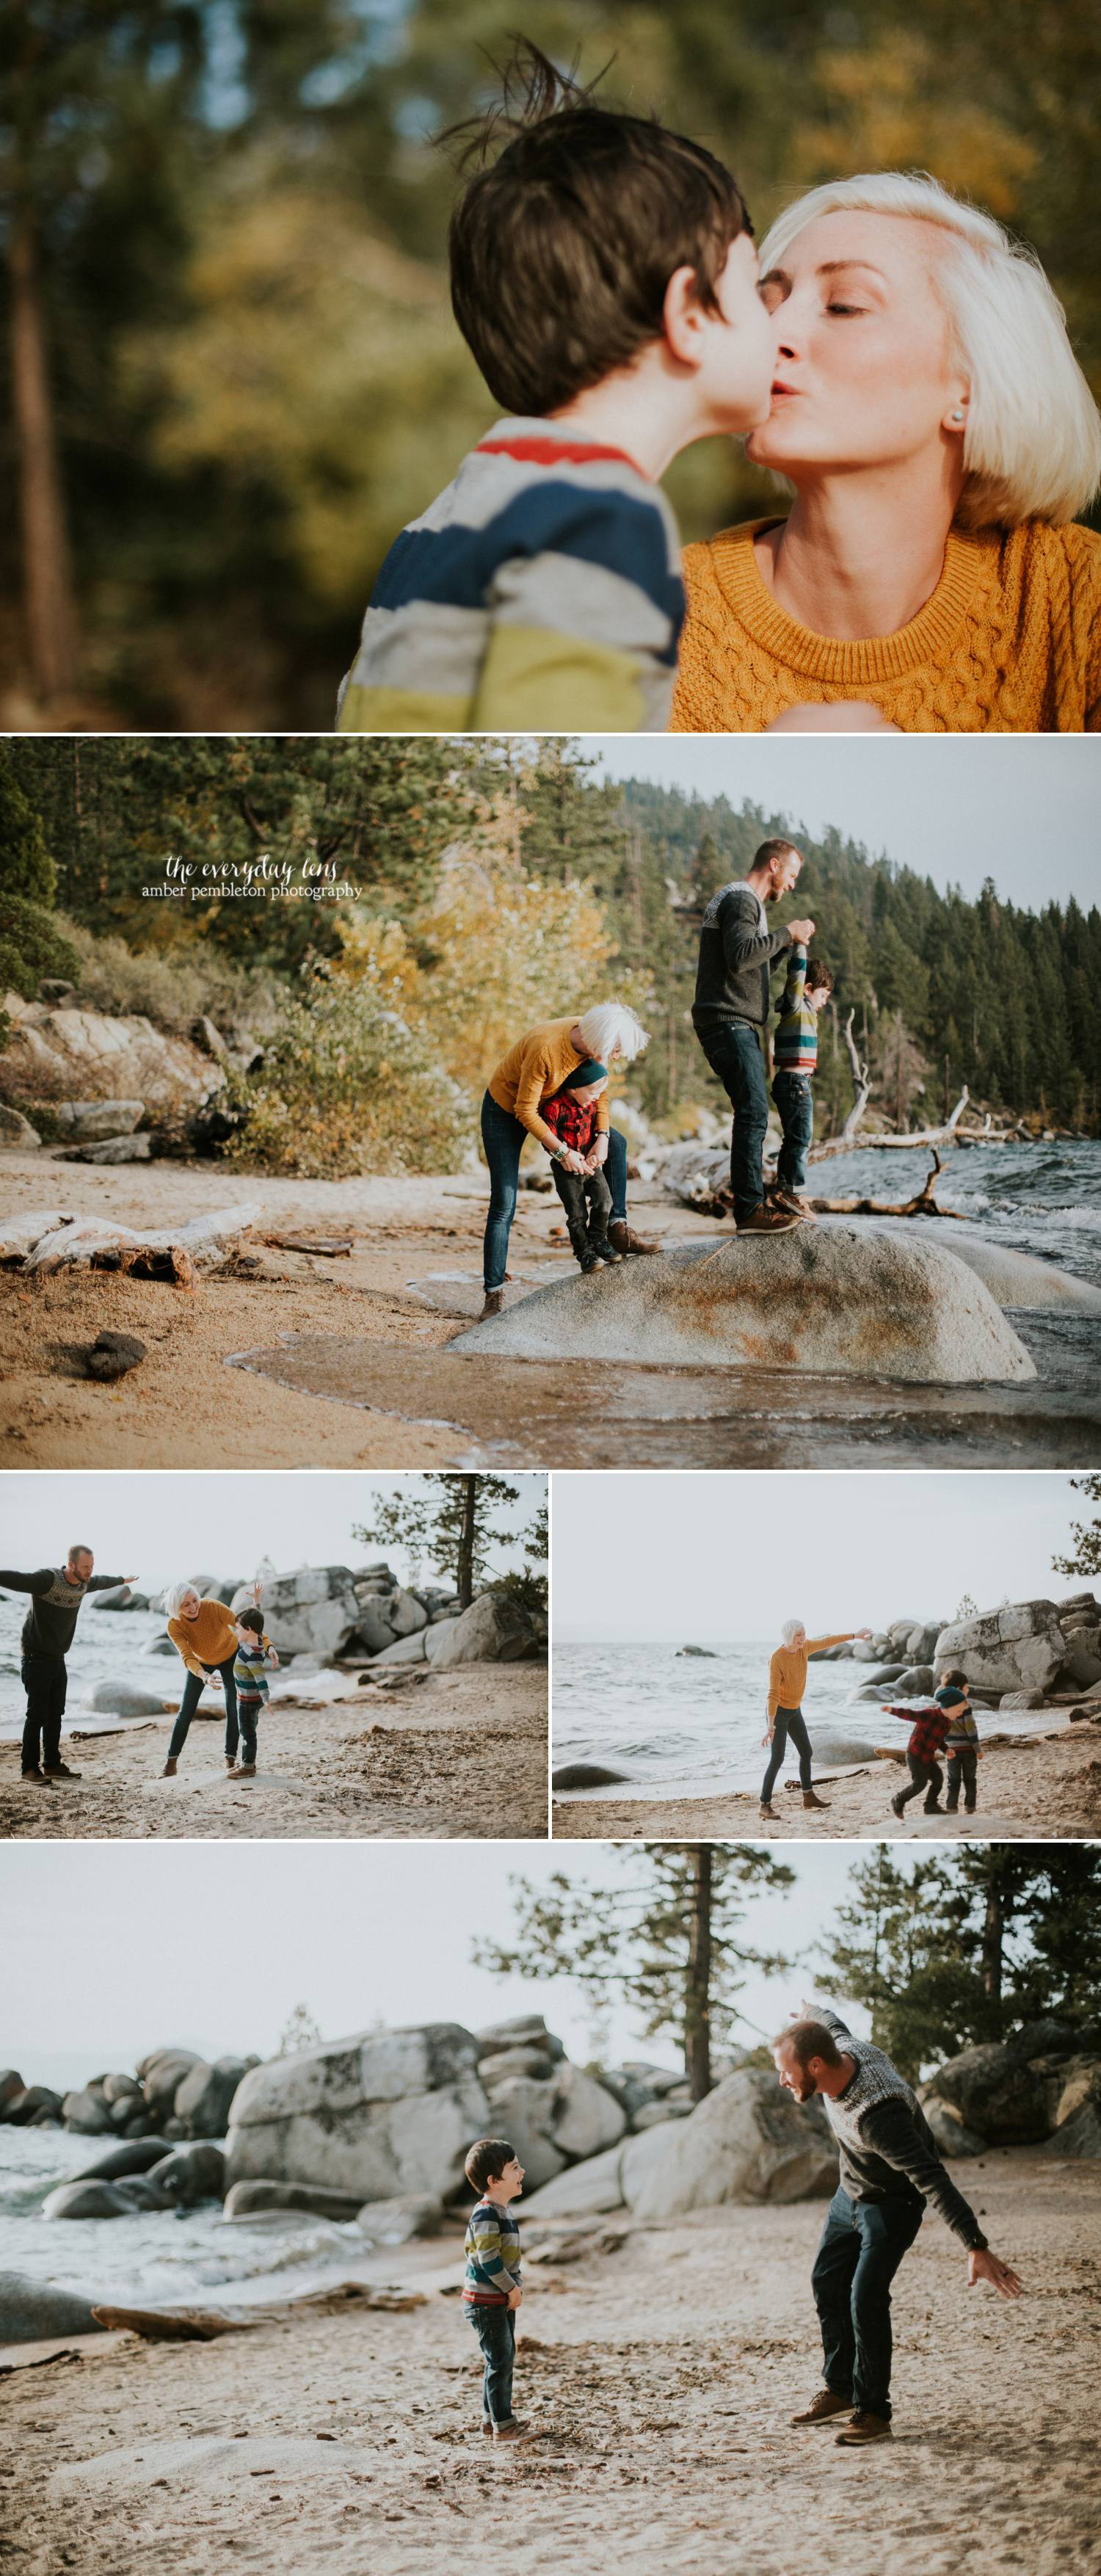 family-playing-chimney-beach.jpg